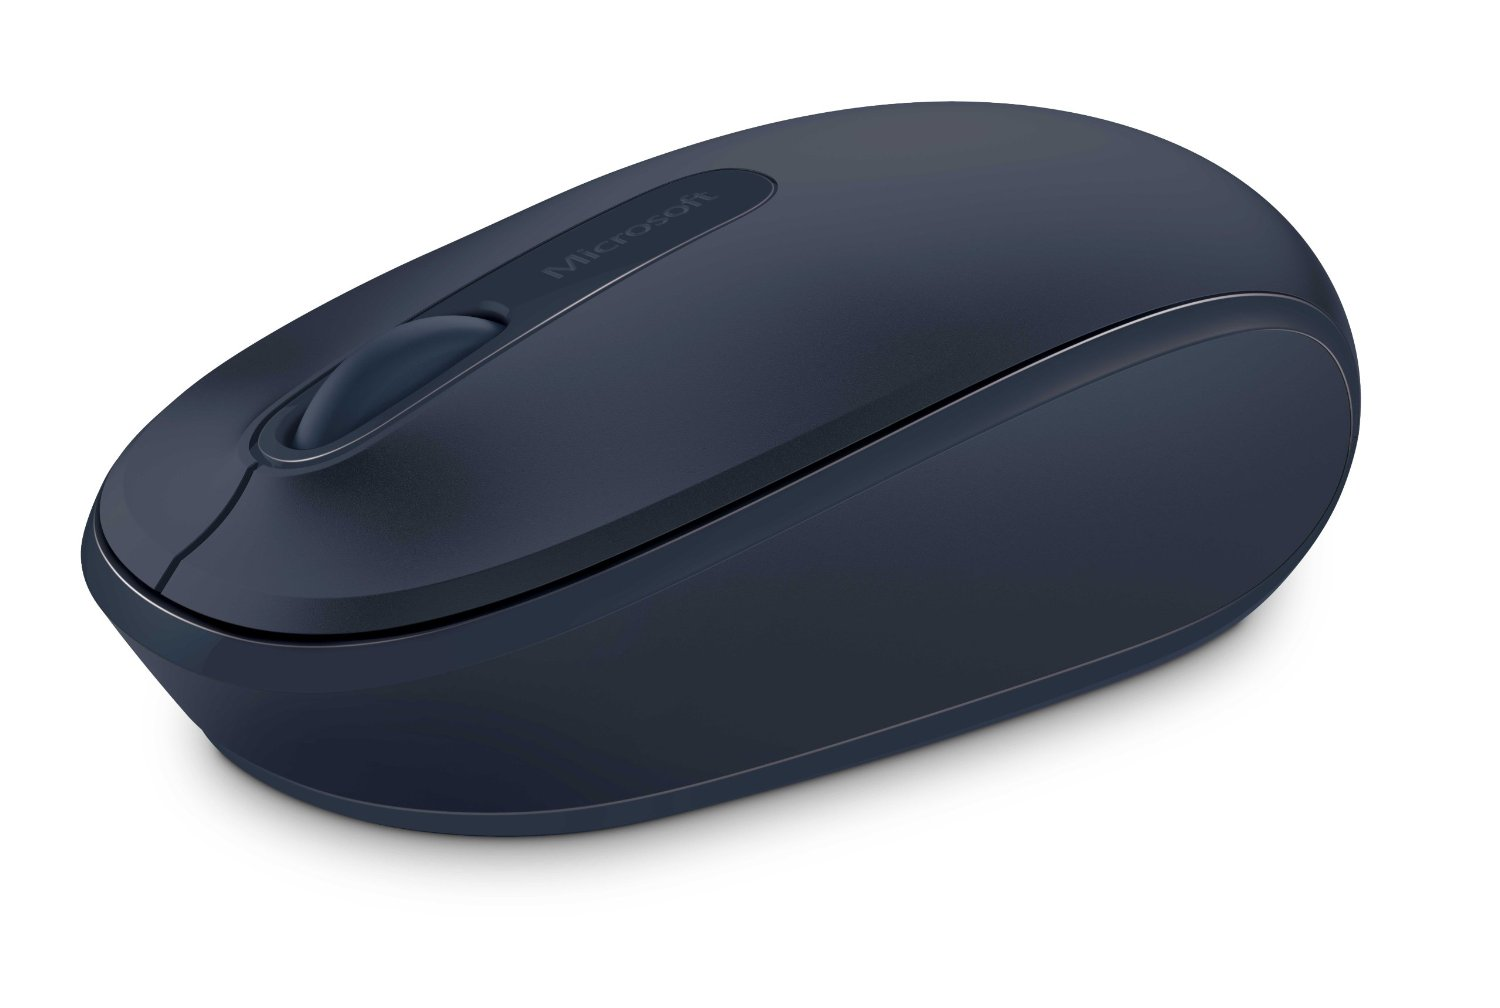 Microsoft Wireless Mobile Mouse 1850 - Mouse - optical